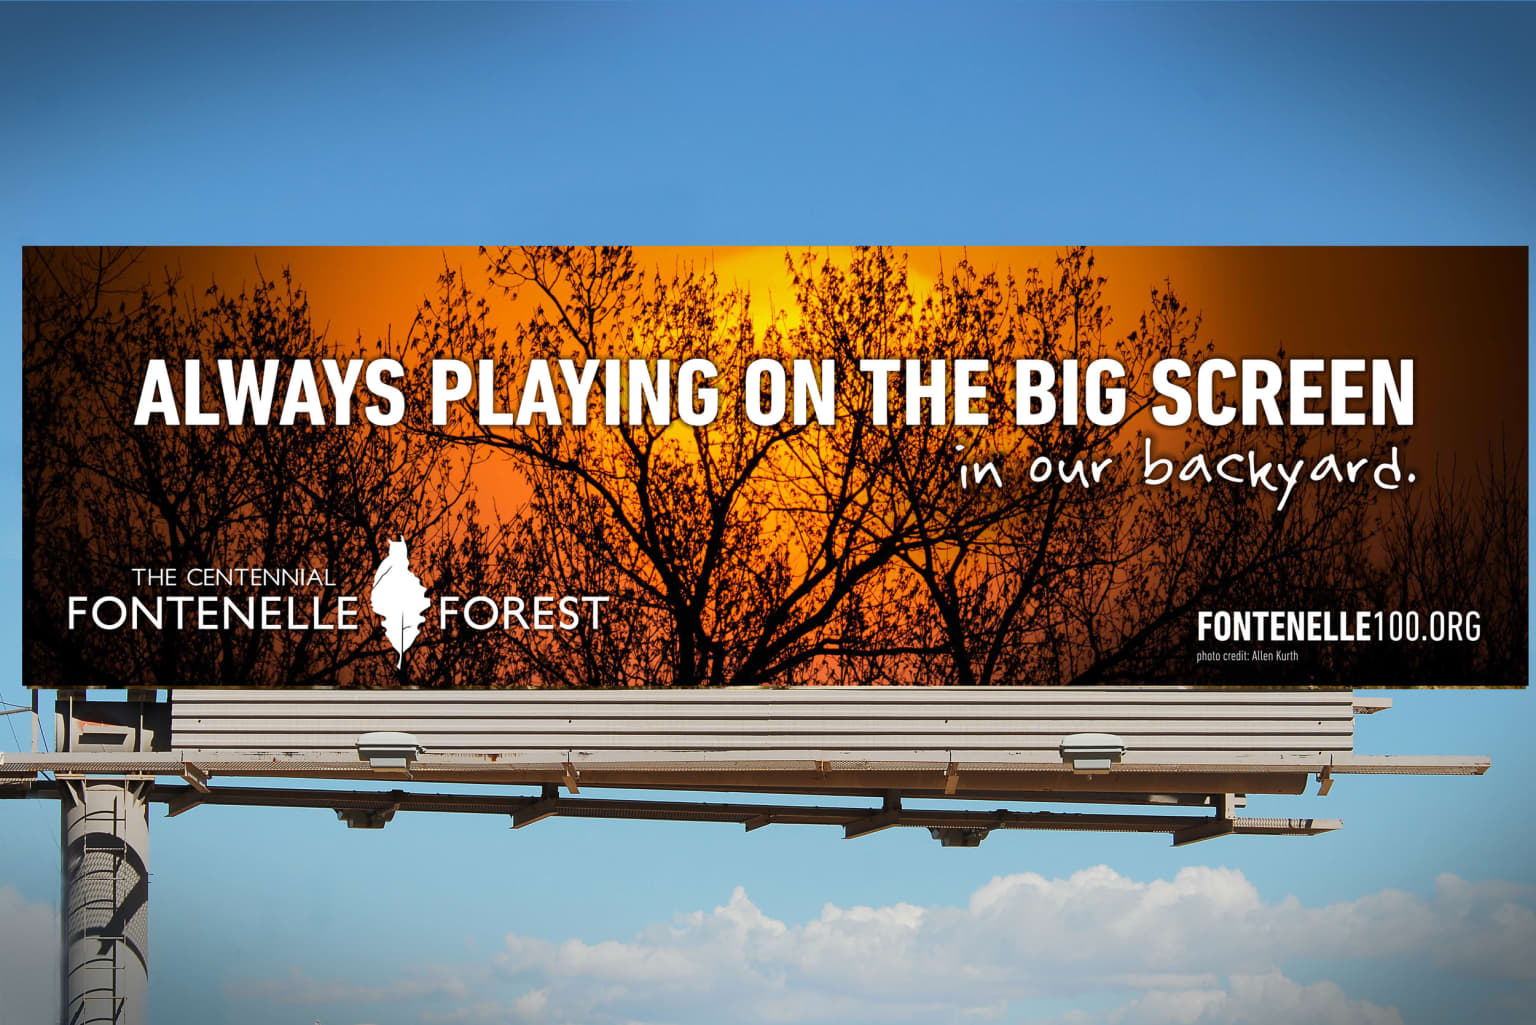 Fontenelle Forest - Brand Building